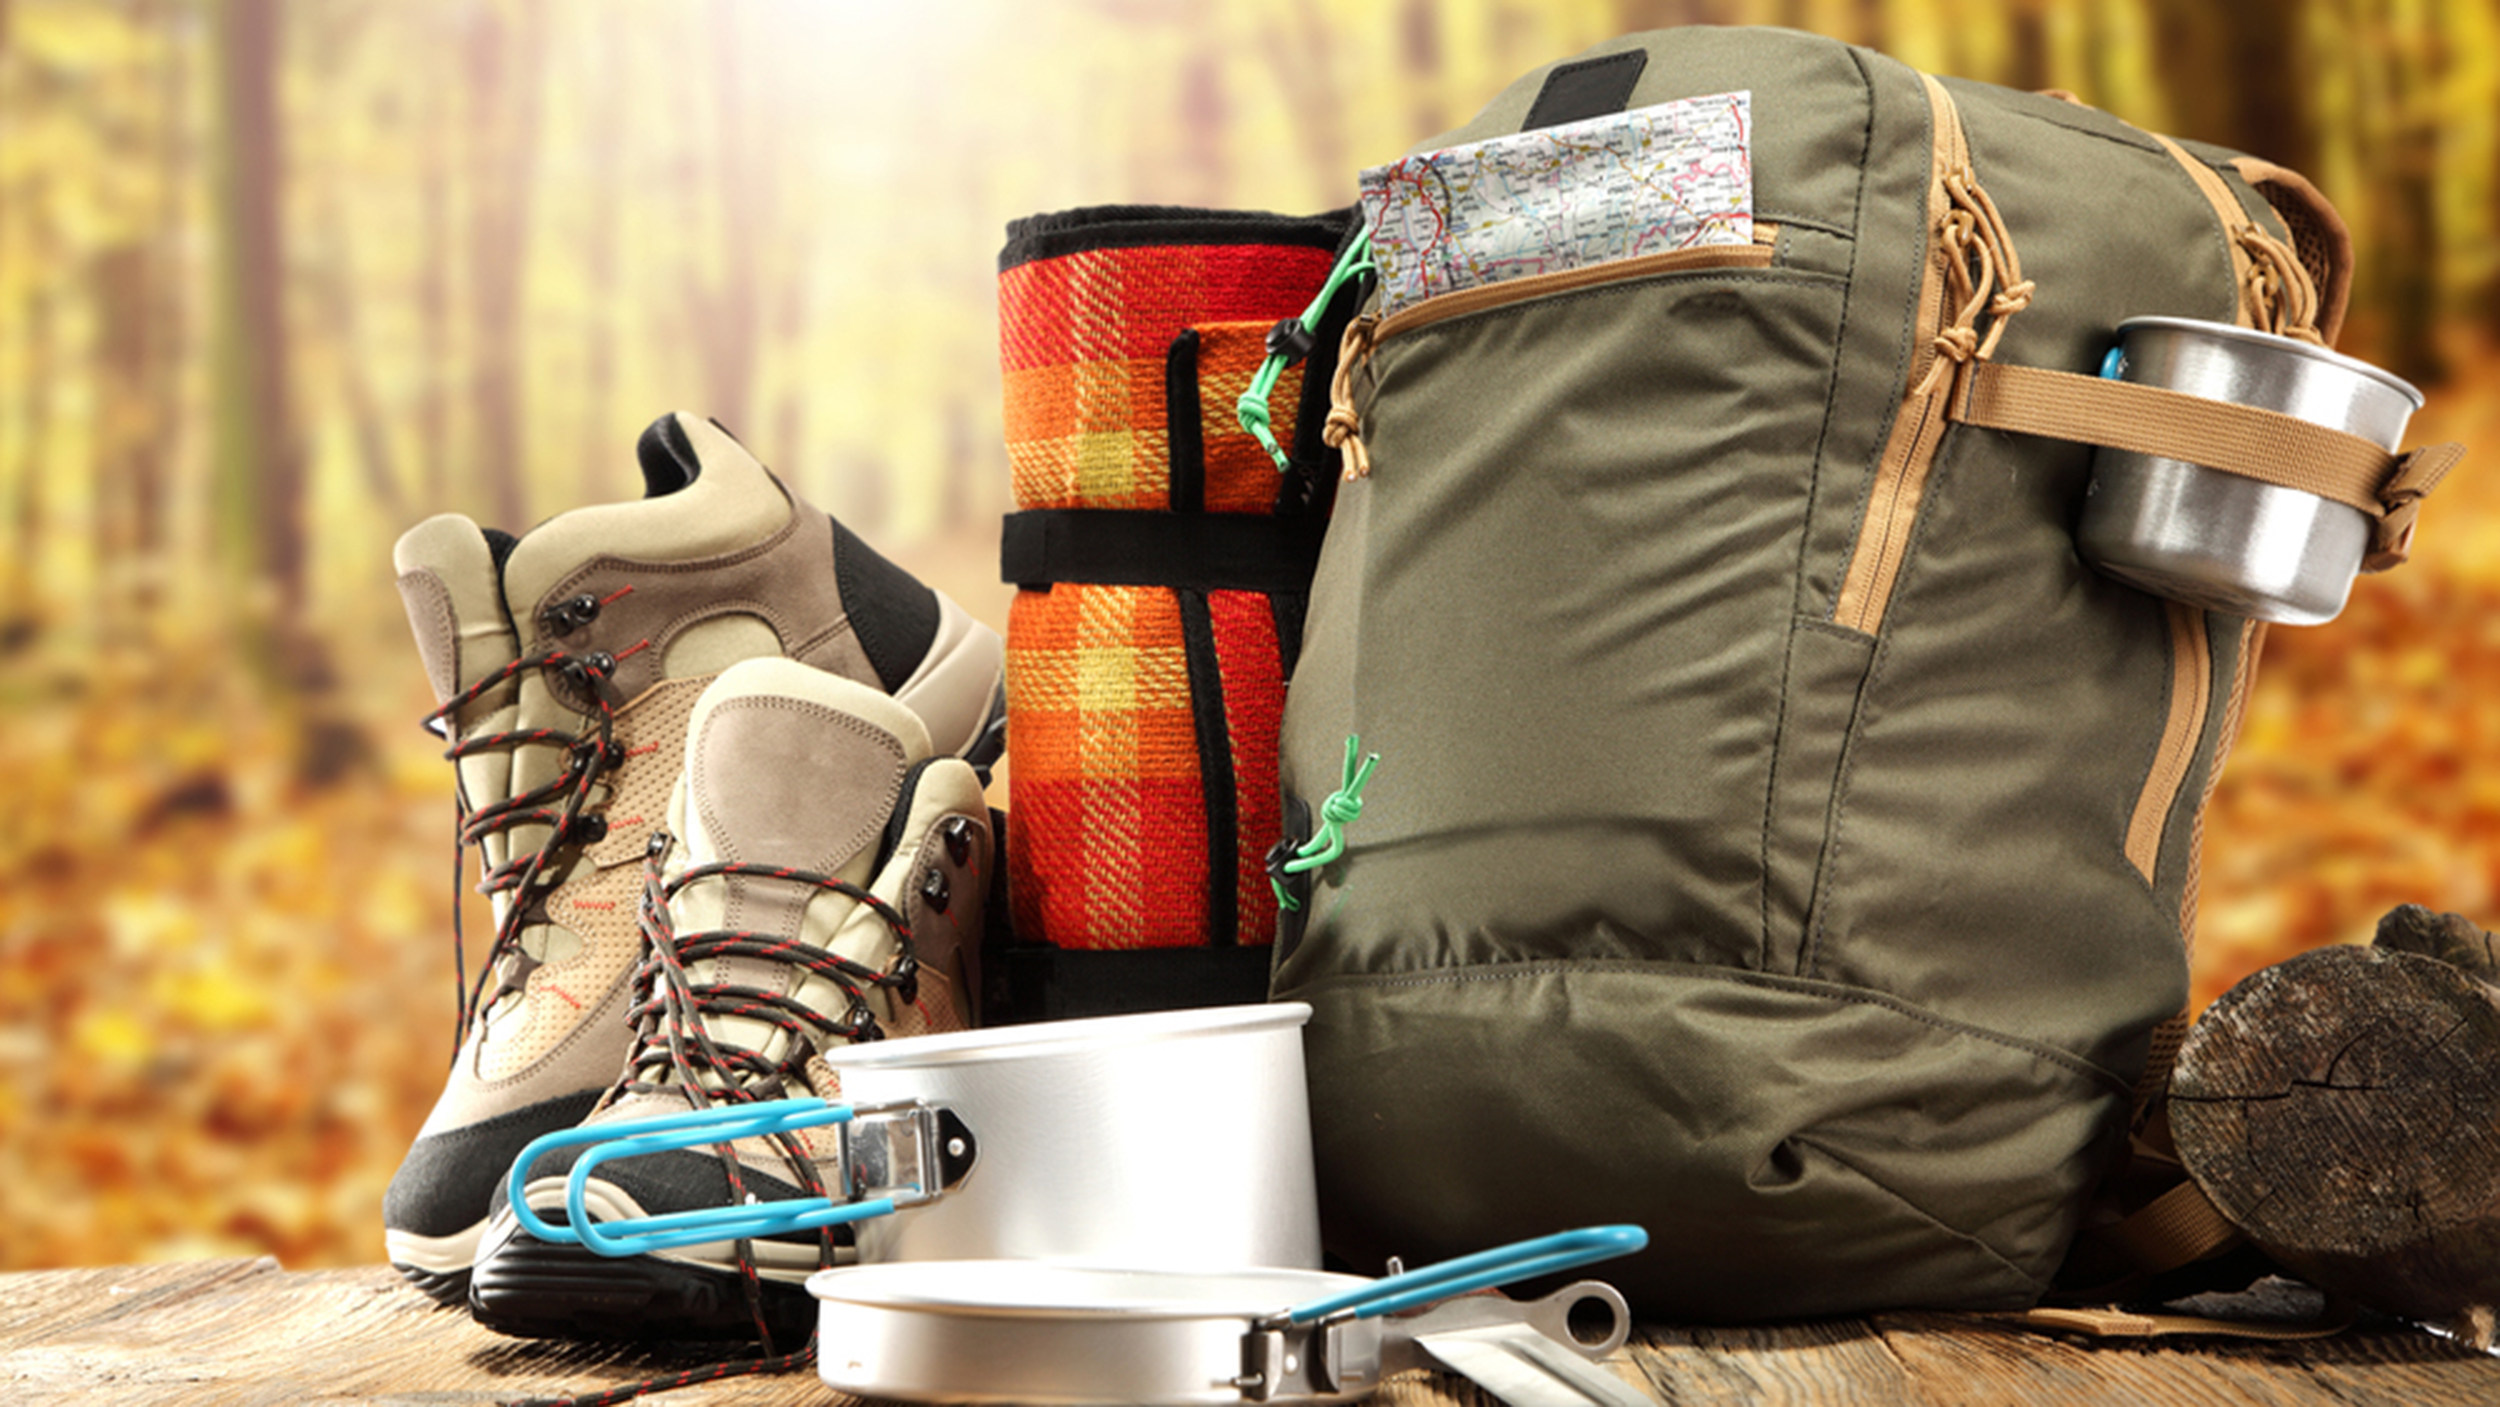 new concept 76861 bcac8 October's best deals: From camping gear to Halloween costumes